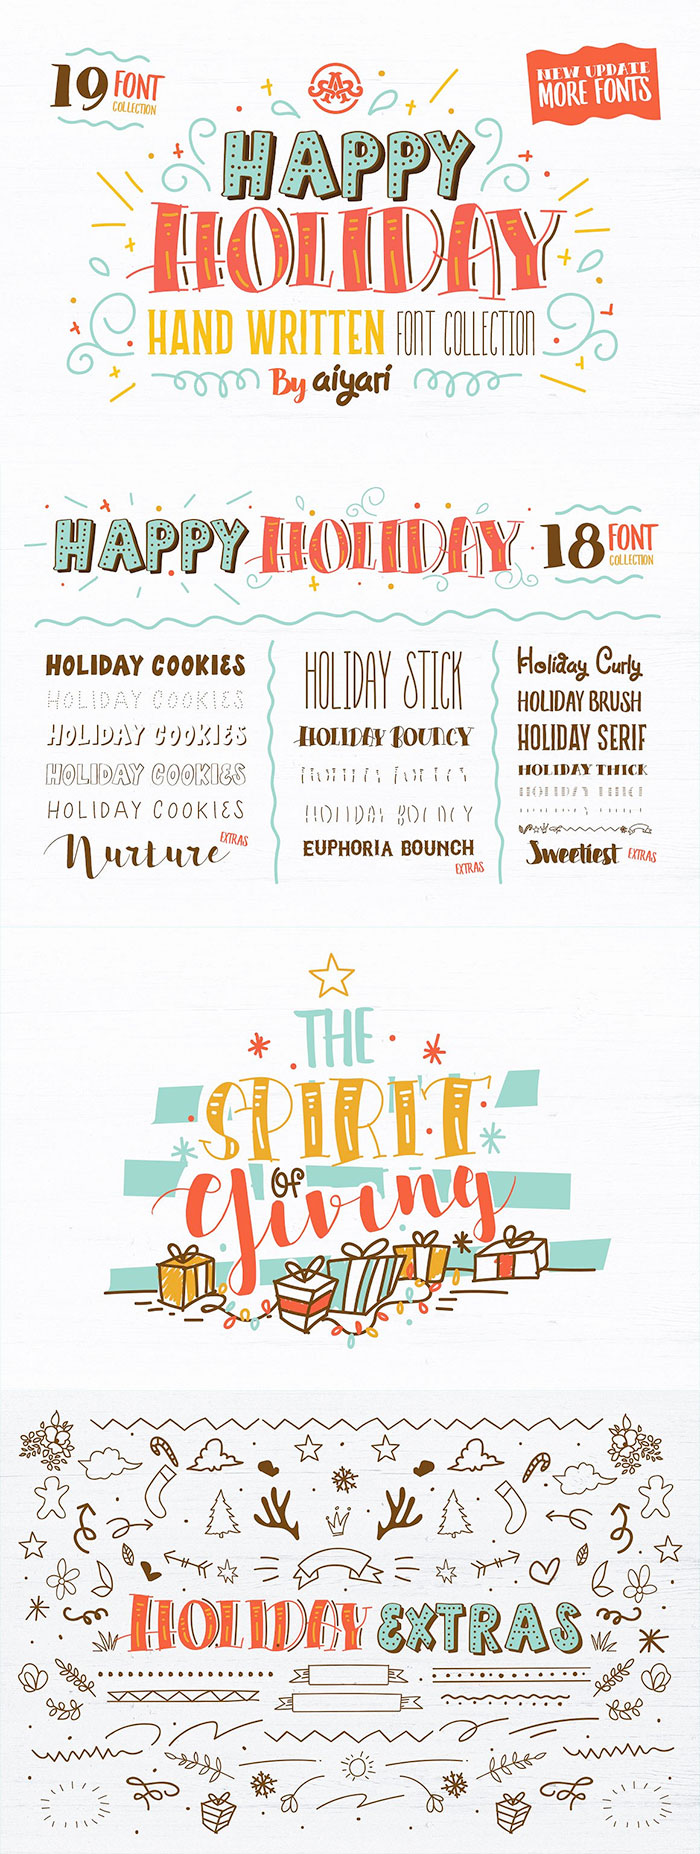 Happy Holidays 17+ font bundle and extras. A roundup of Christmas and holiday graphics and fonts for your holiday blog posts and social media posts!